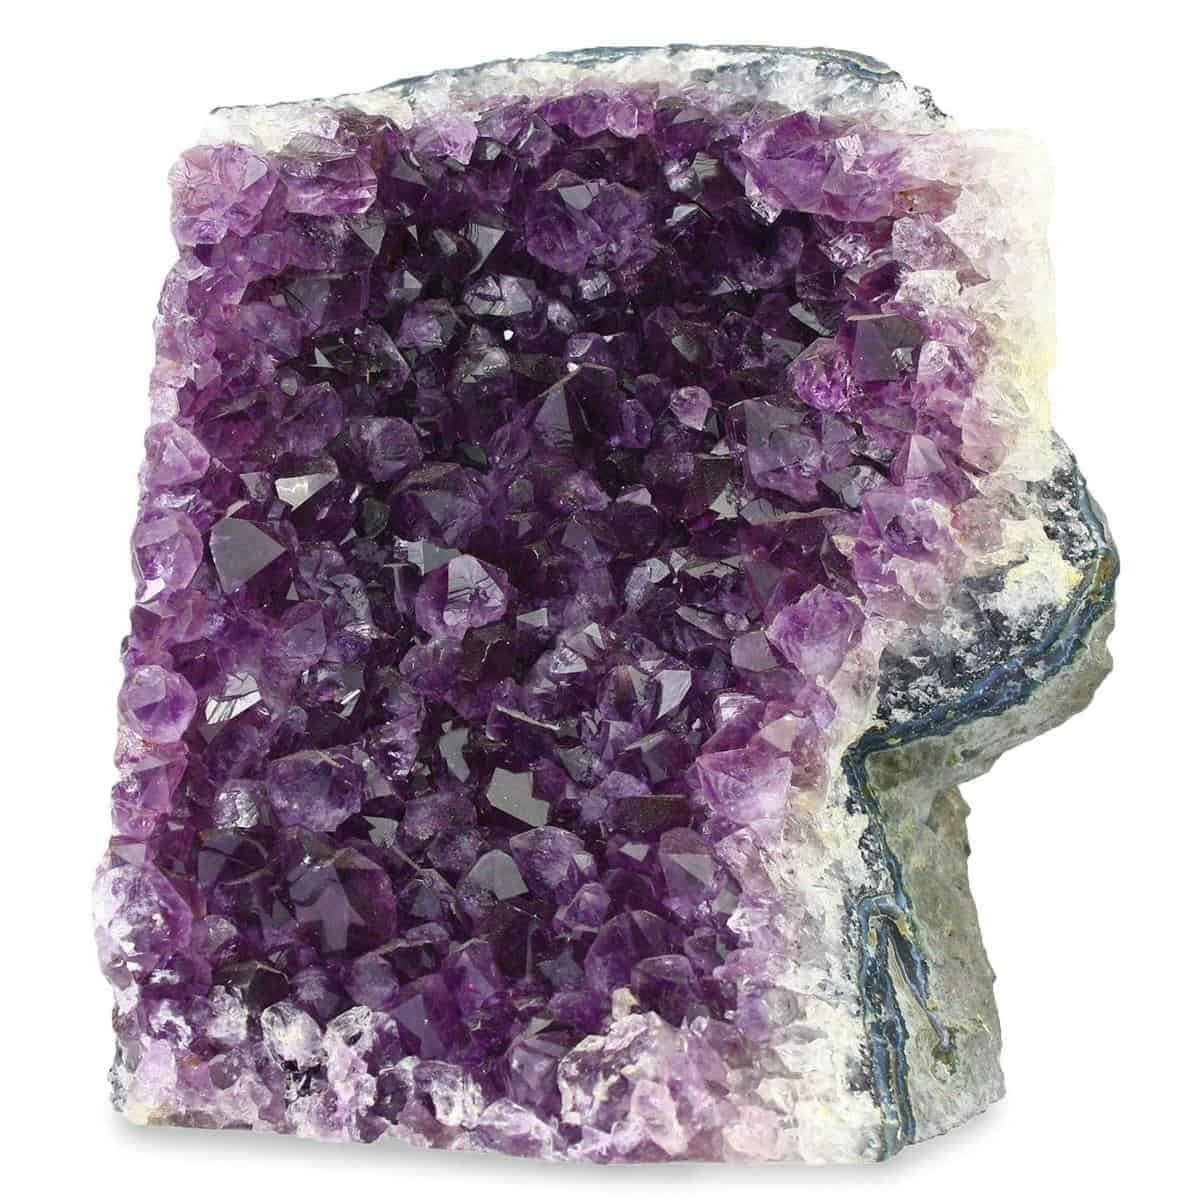 Natural Amethyst Citrine And Crystal Quartz Clusters From